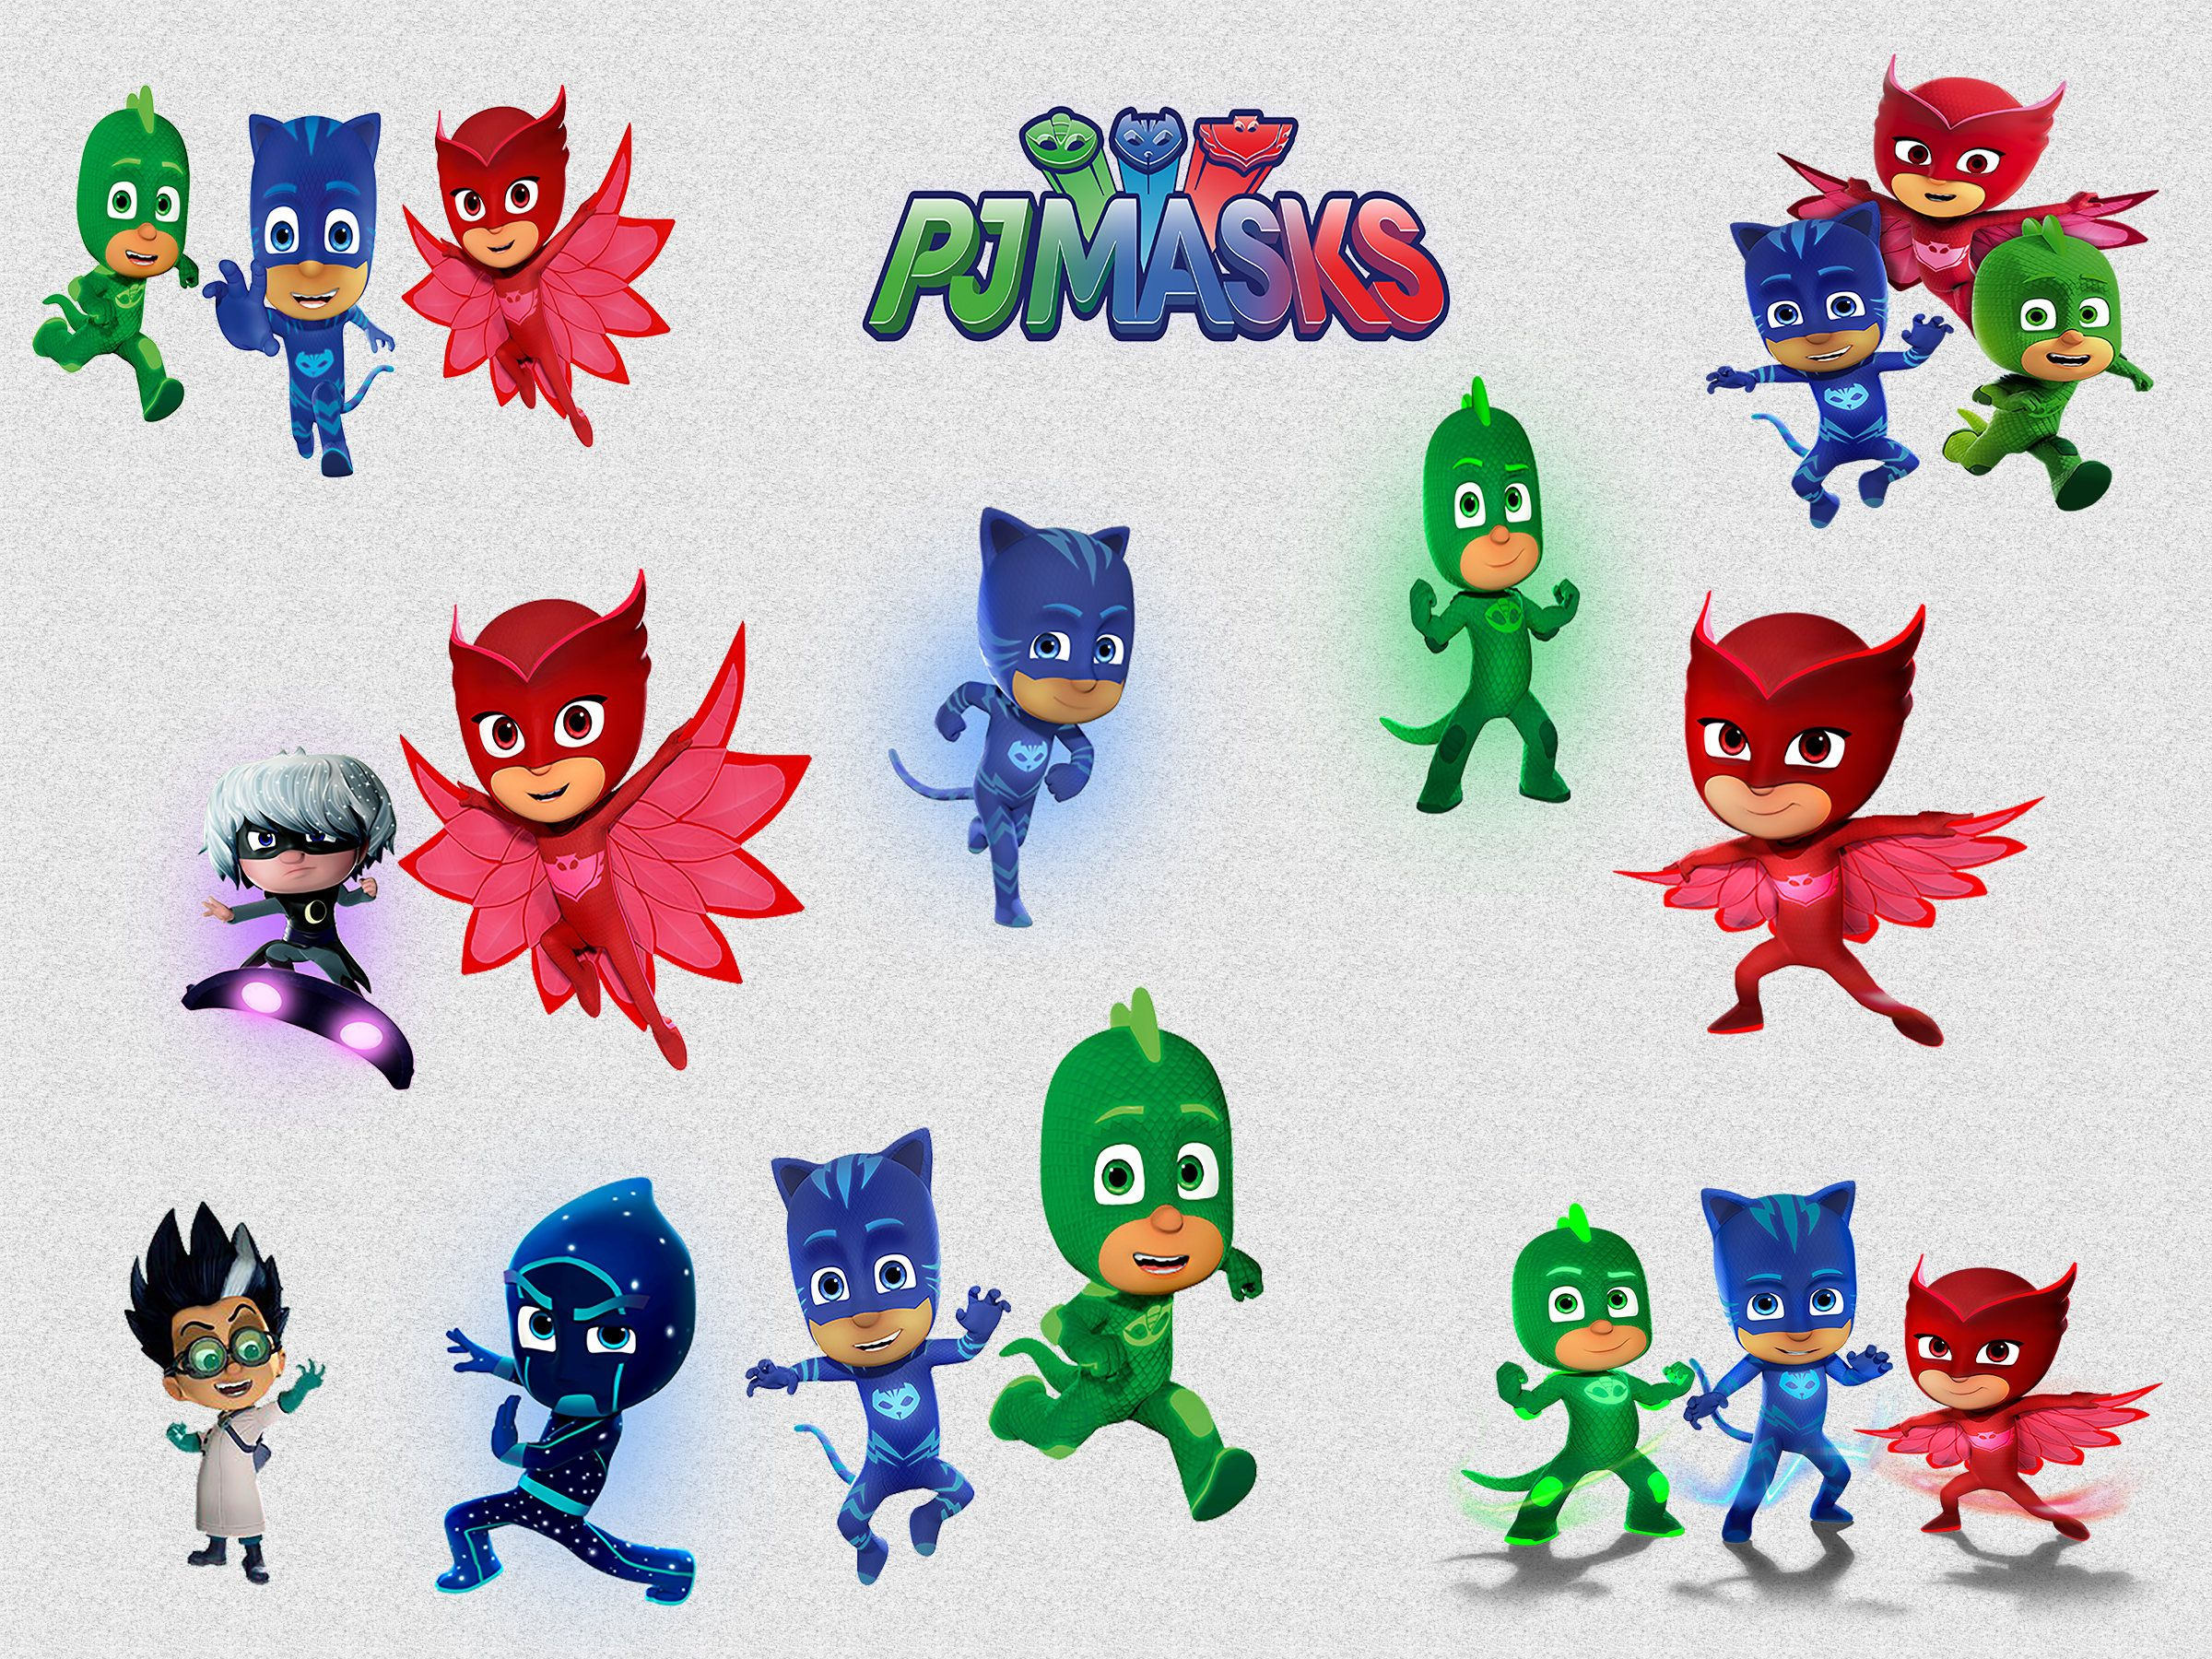 Gekko pj mask clipart svg black and white stock PJ MASKS CLIPART, 21 High Quality Png Images with Transparent ... svg black and white stock